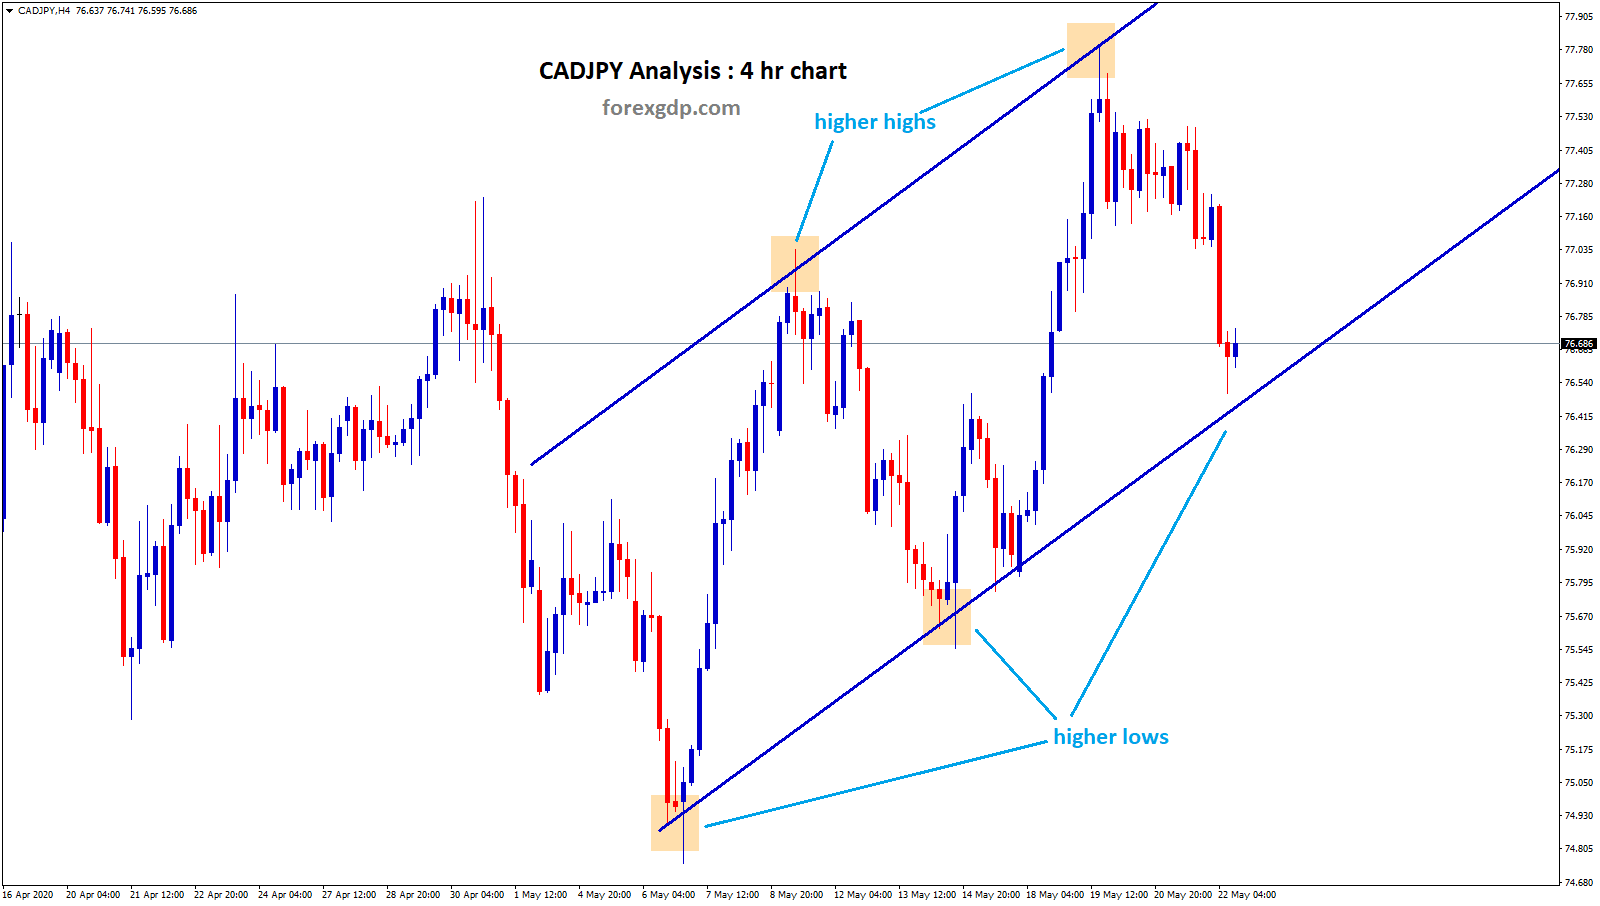 CADJPY reach trend line support in 4 hr chart